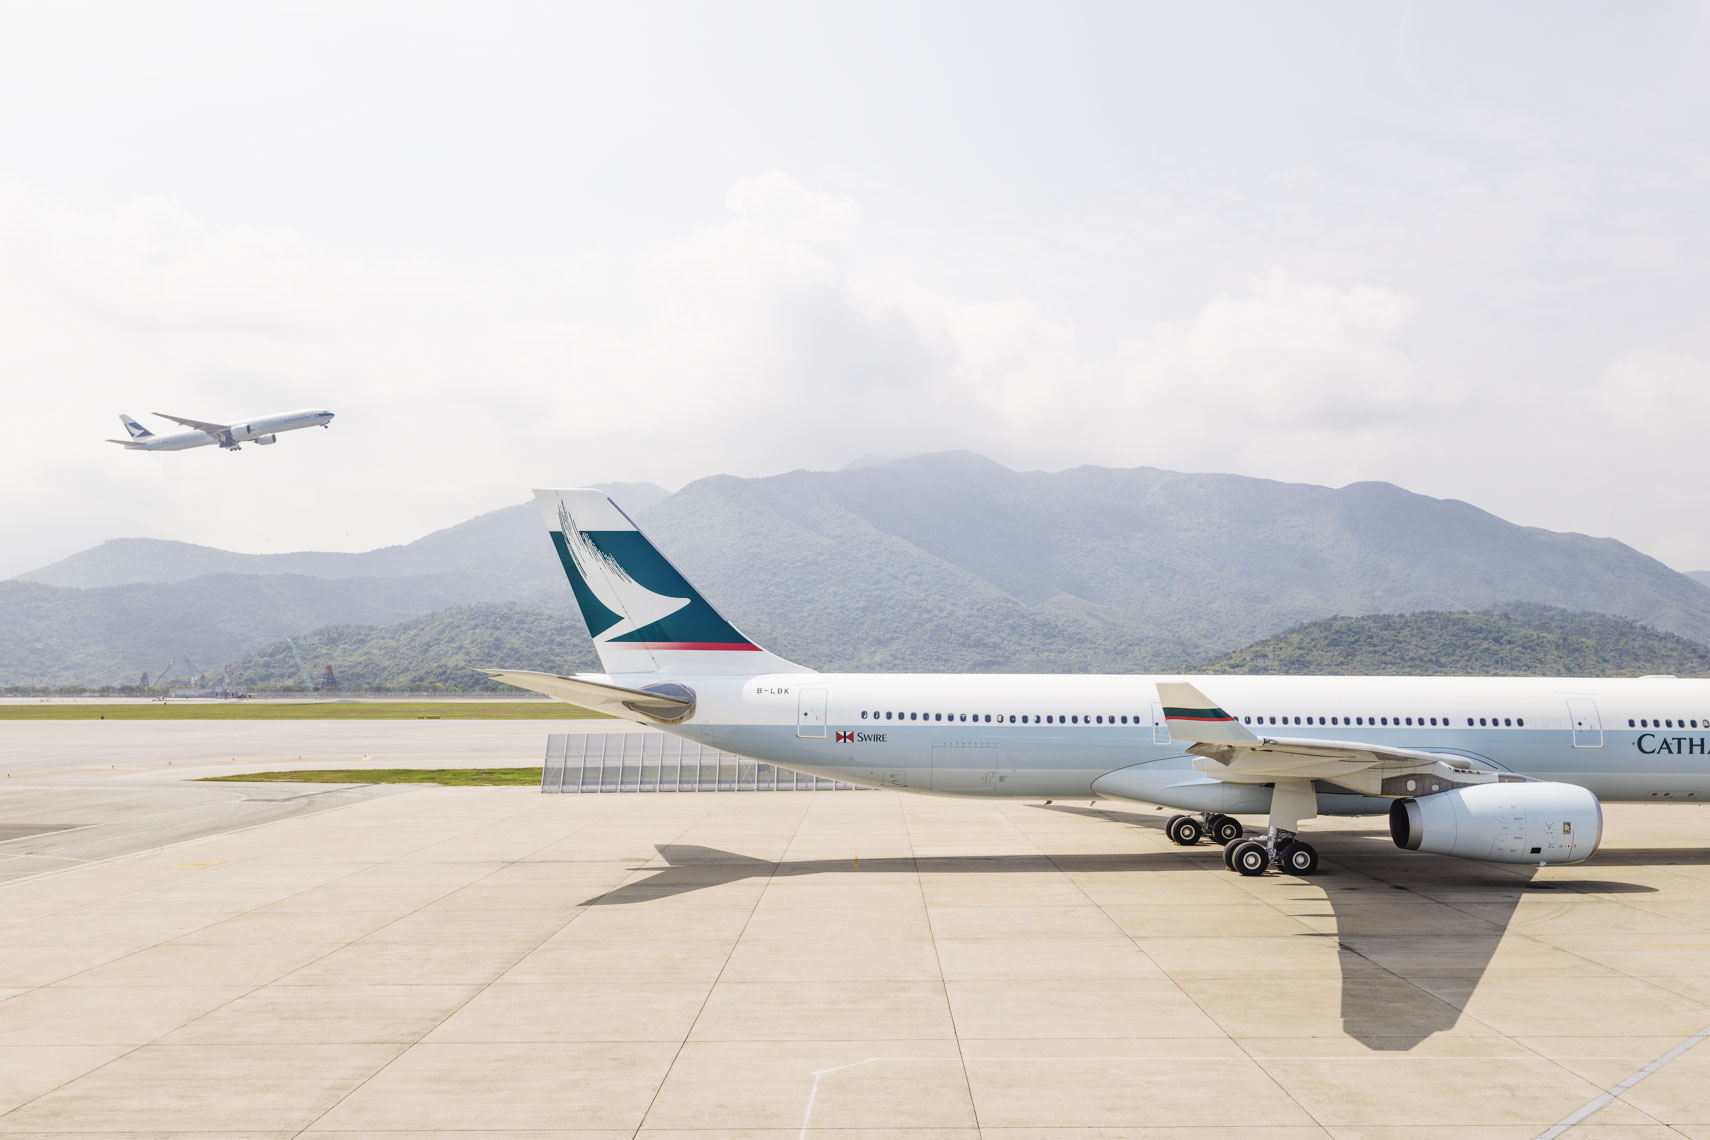 peggy-wong-photography_aviation_cathay-pacific_00149